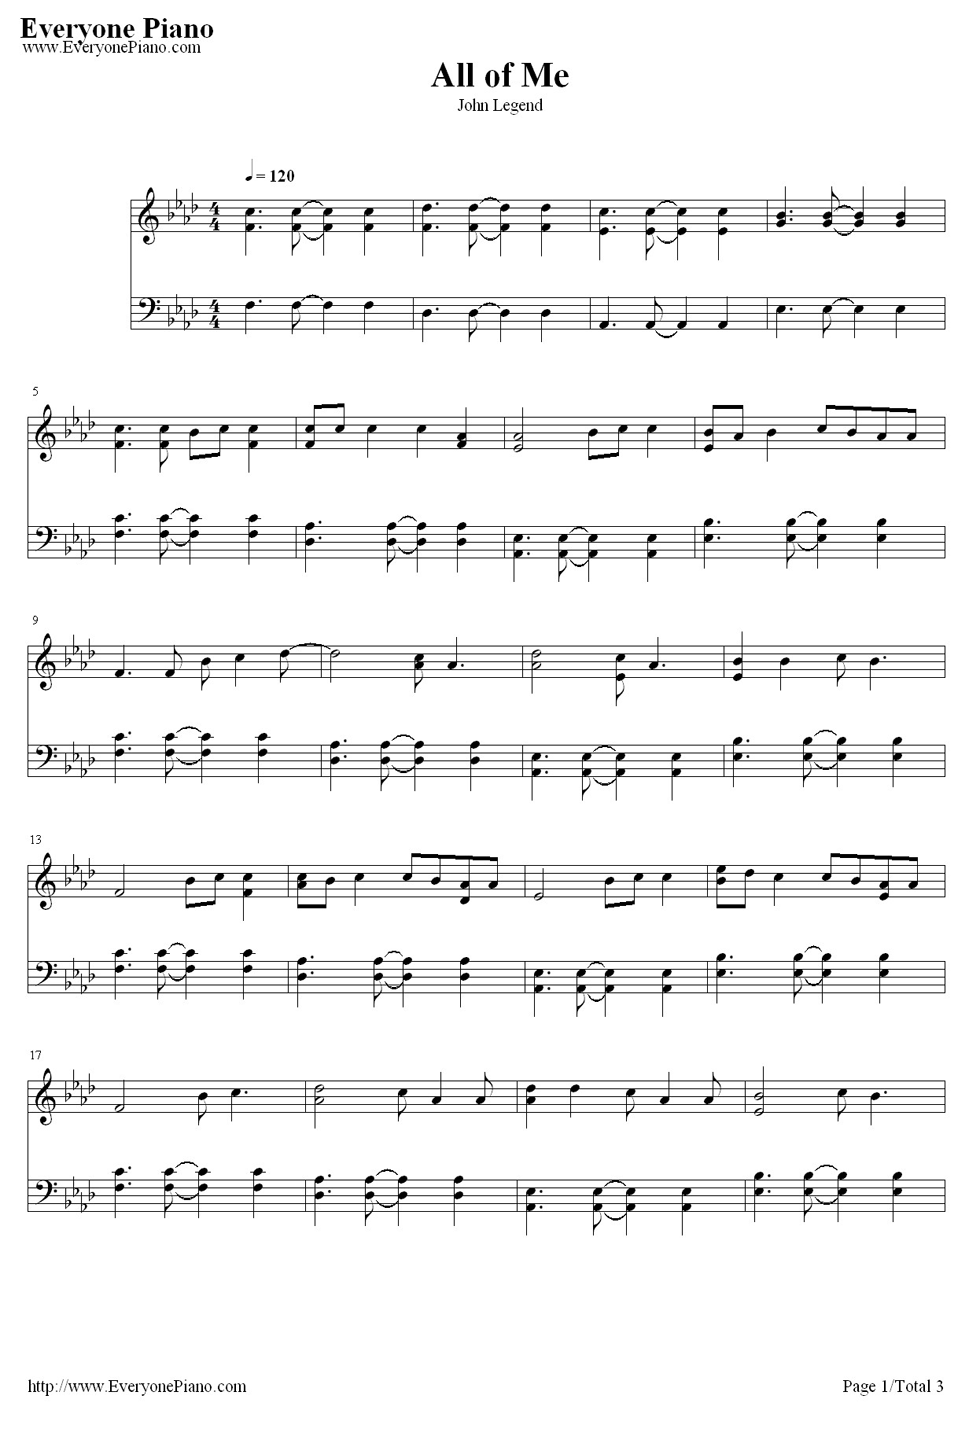 All Of Me Piano Sheet Music next song i want to learn how to play: all of me-john legend